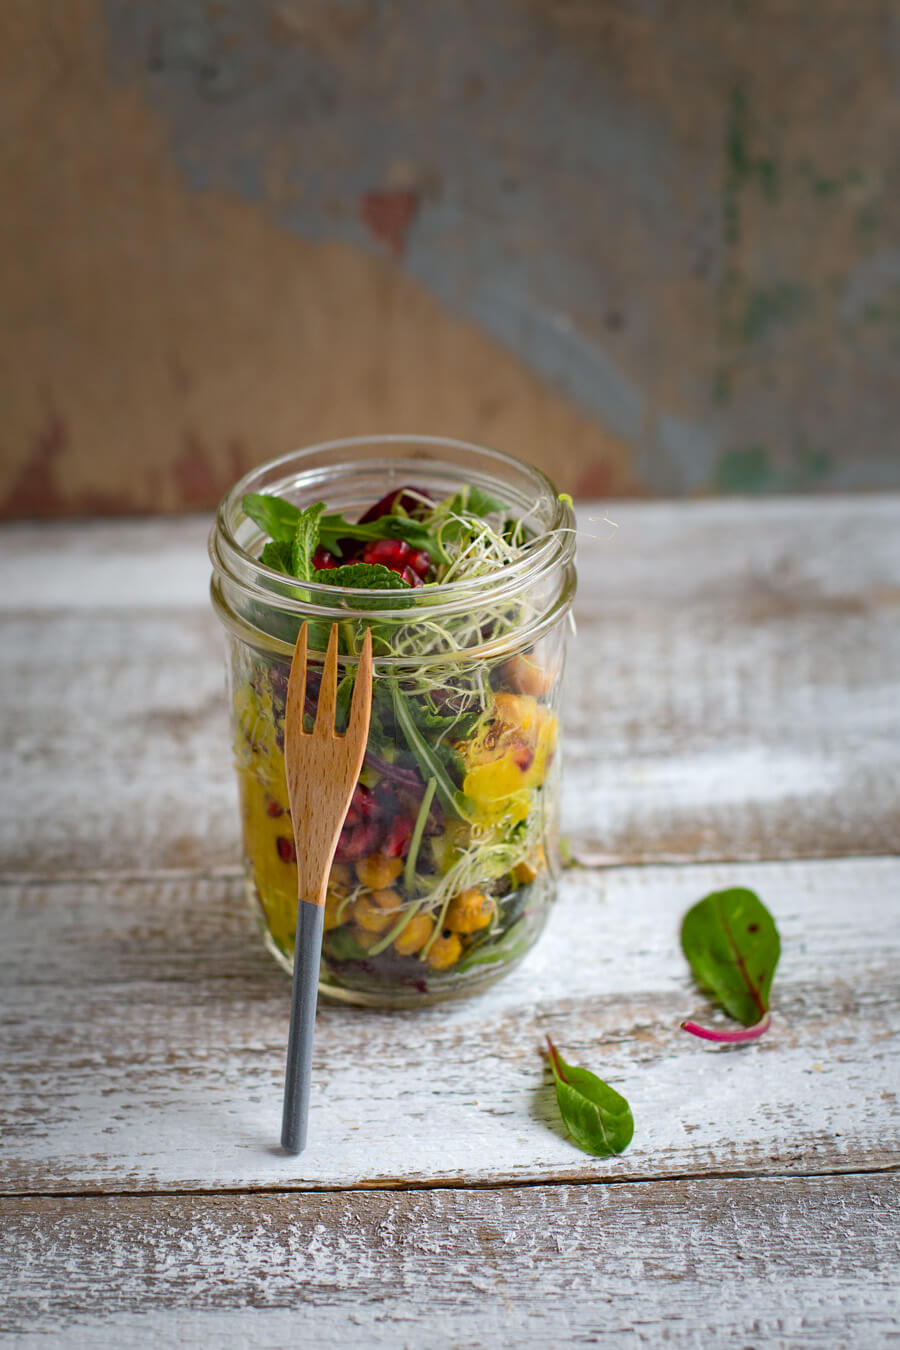 Wild herbs salad in a glas